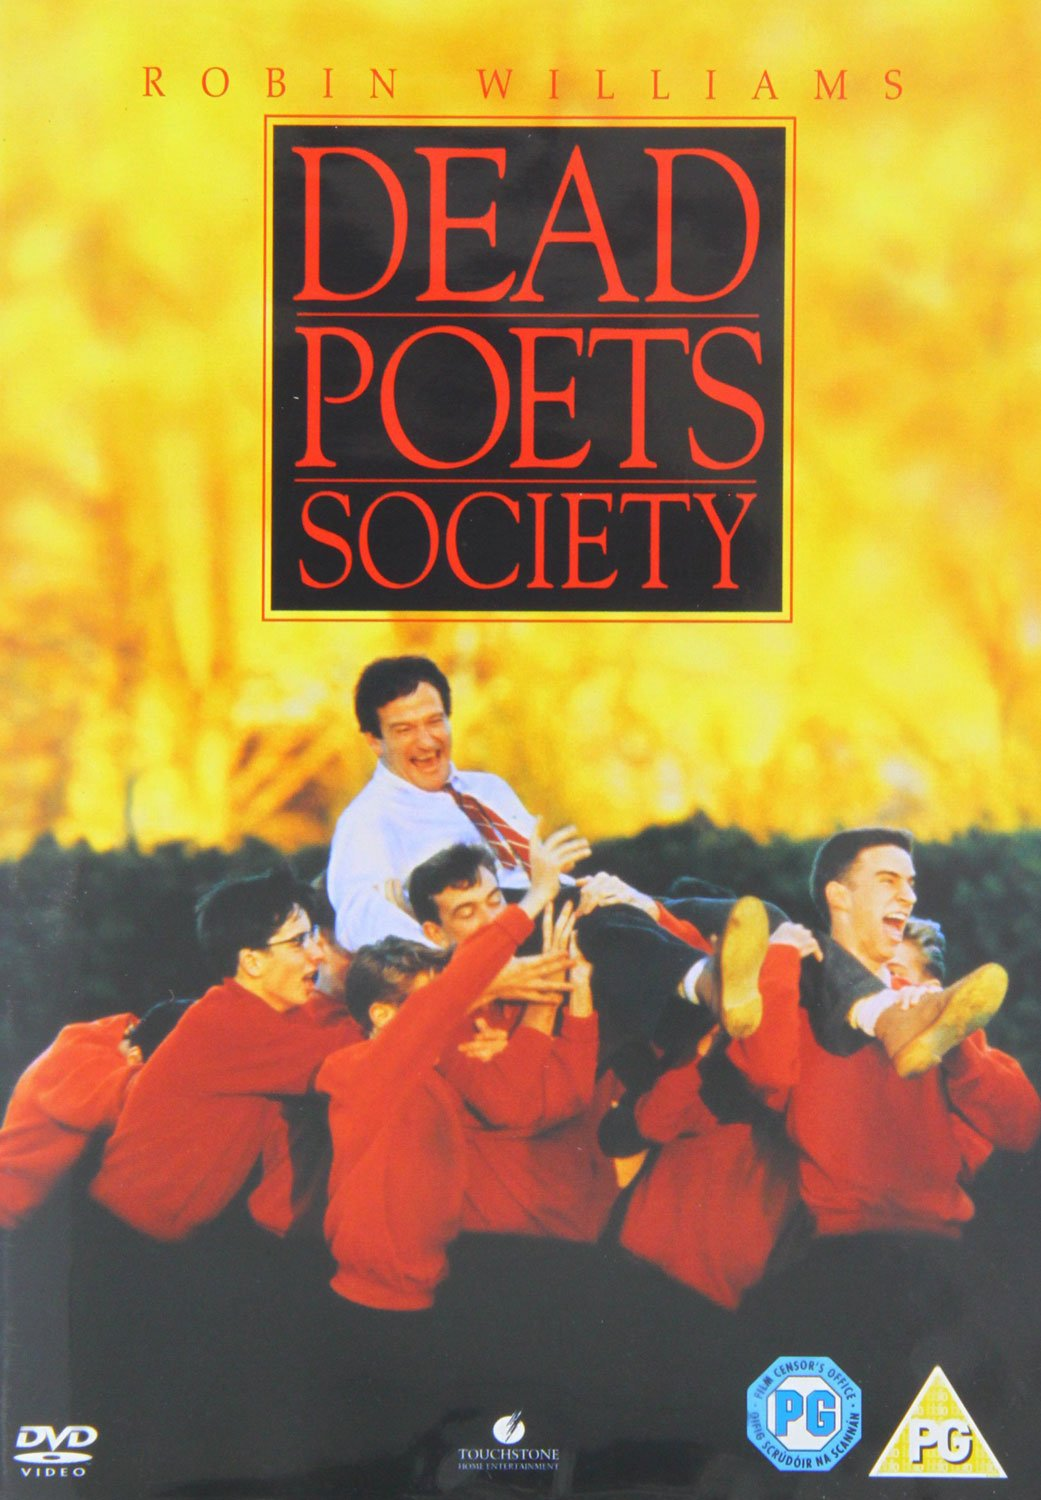 com dead poets society robin williams robert sean com dead poets society robin williams robert sean leonard ethan hawke josh charles gale hansen dylan kussman allelon ruggiero